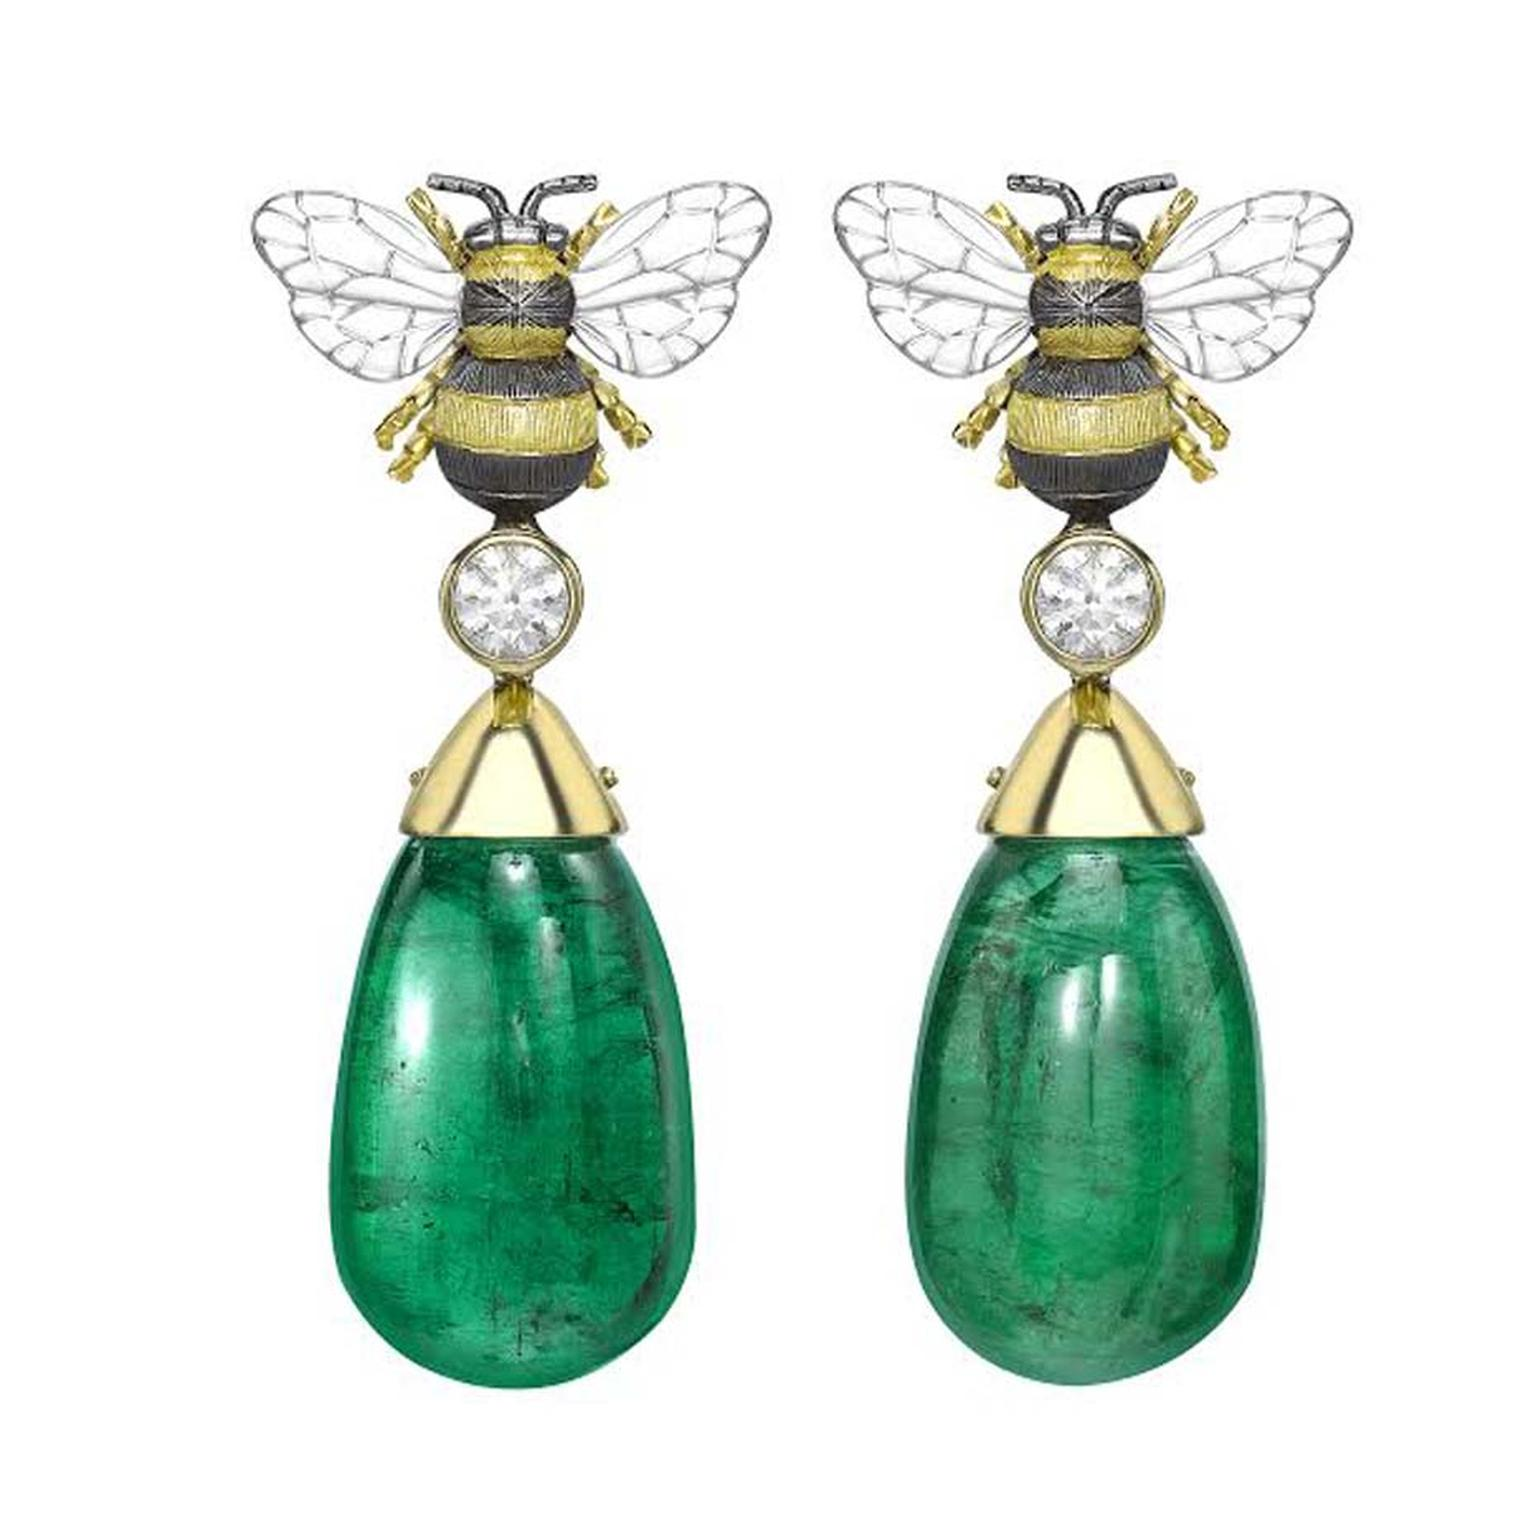 Theo Fennell Gemfields Emerald Bee Drop earrings in 18ct yellow gold with Gemfields Zambian emeralds and white diamonds.